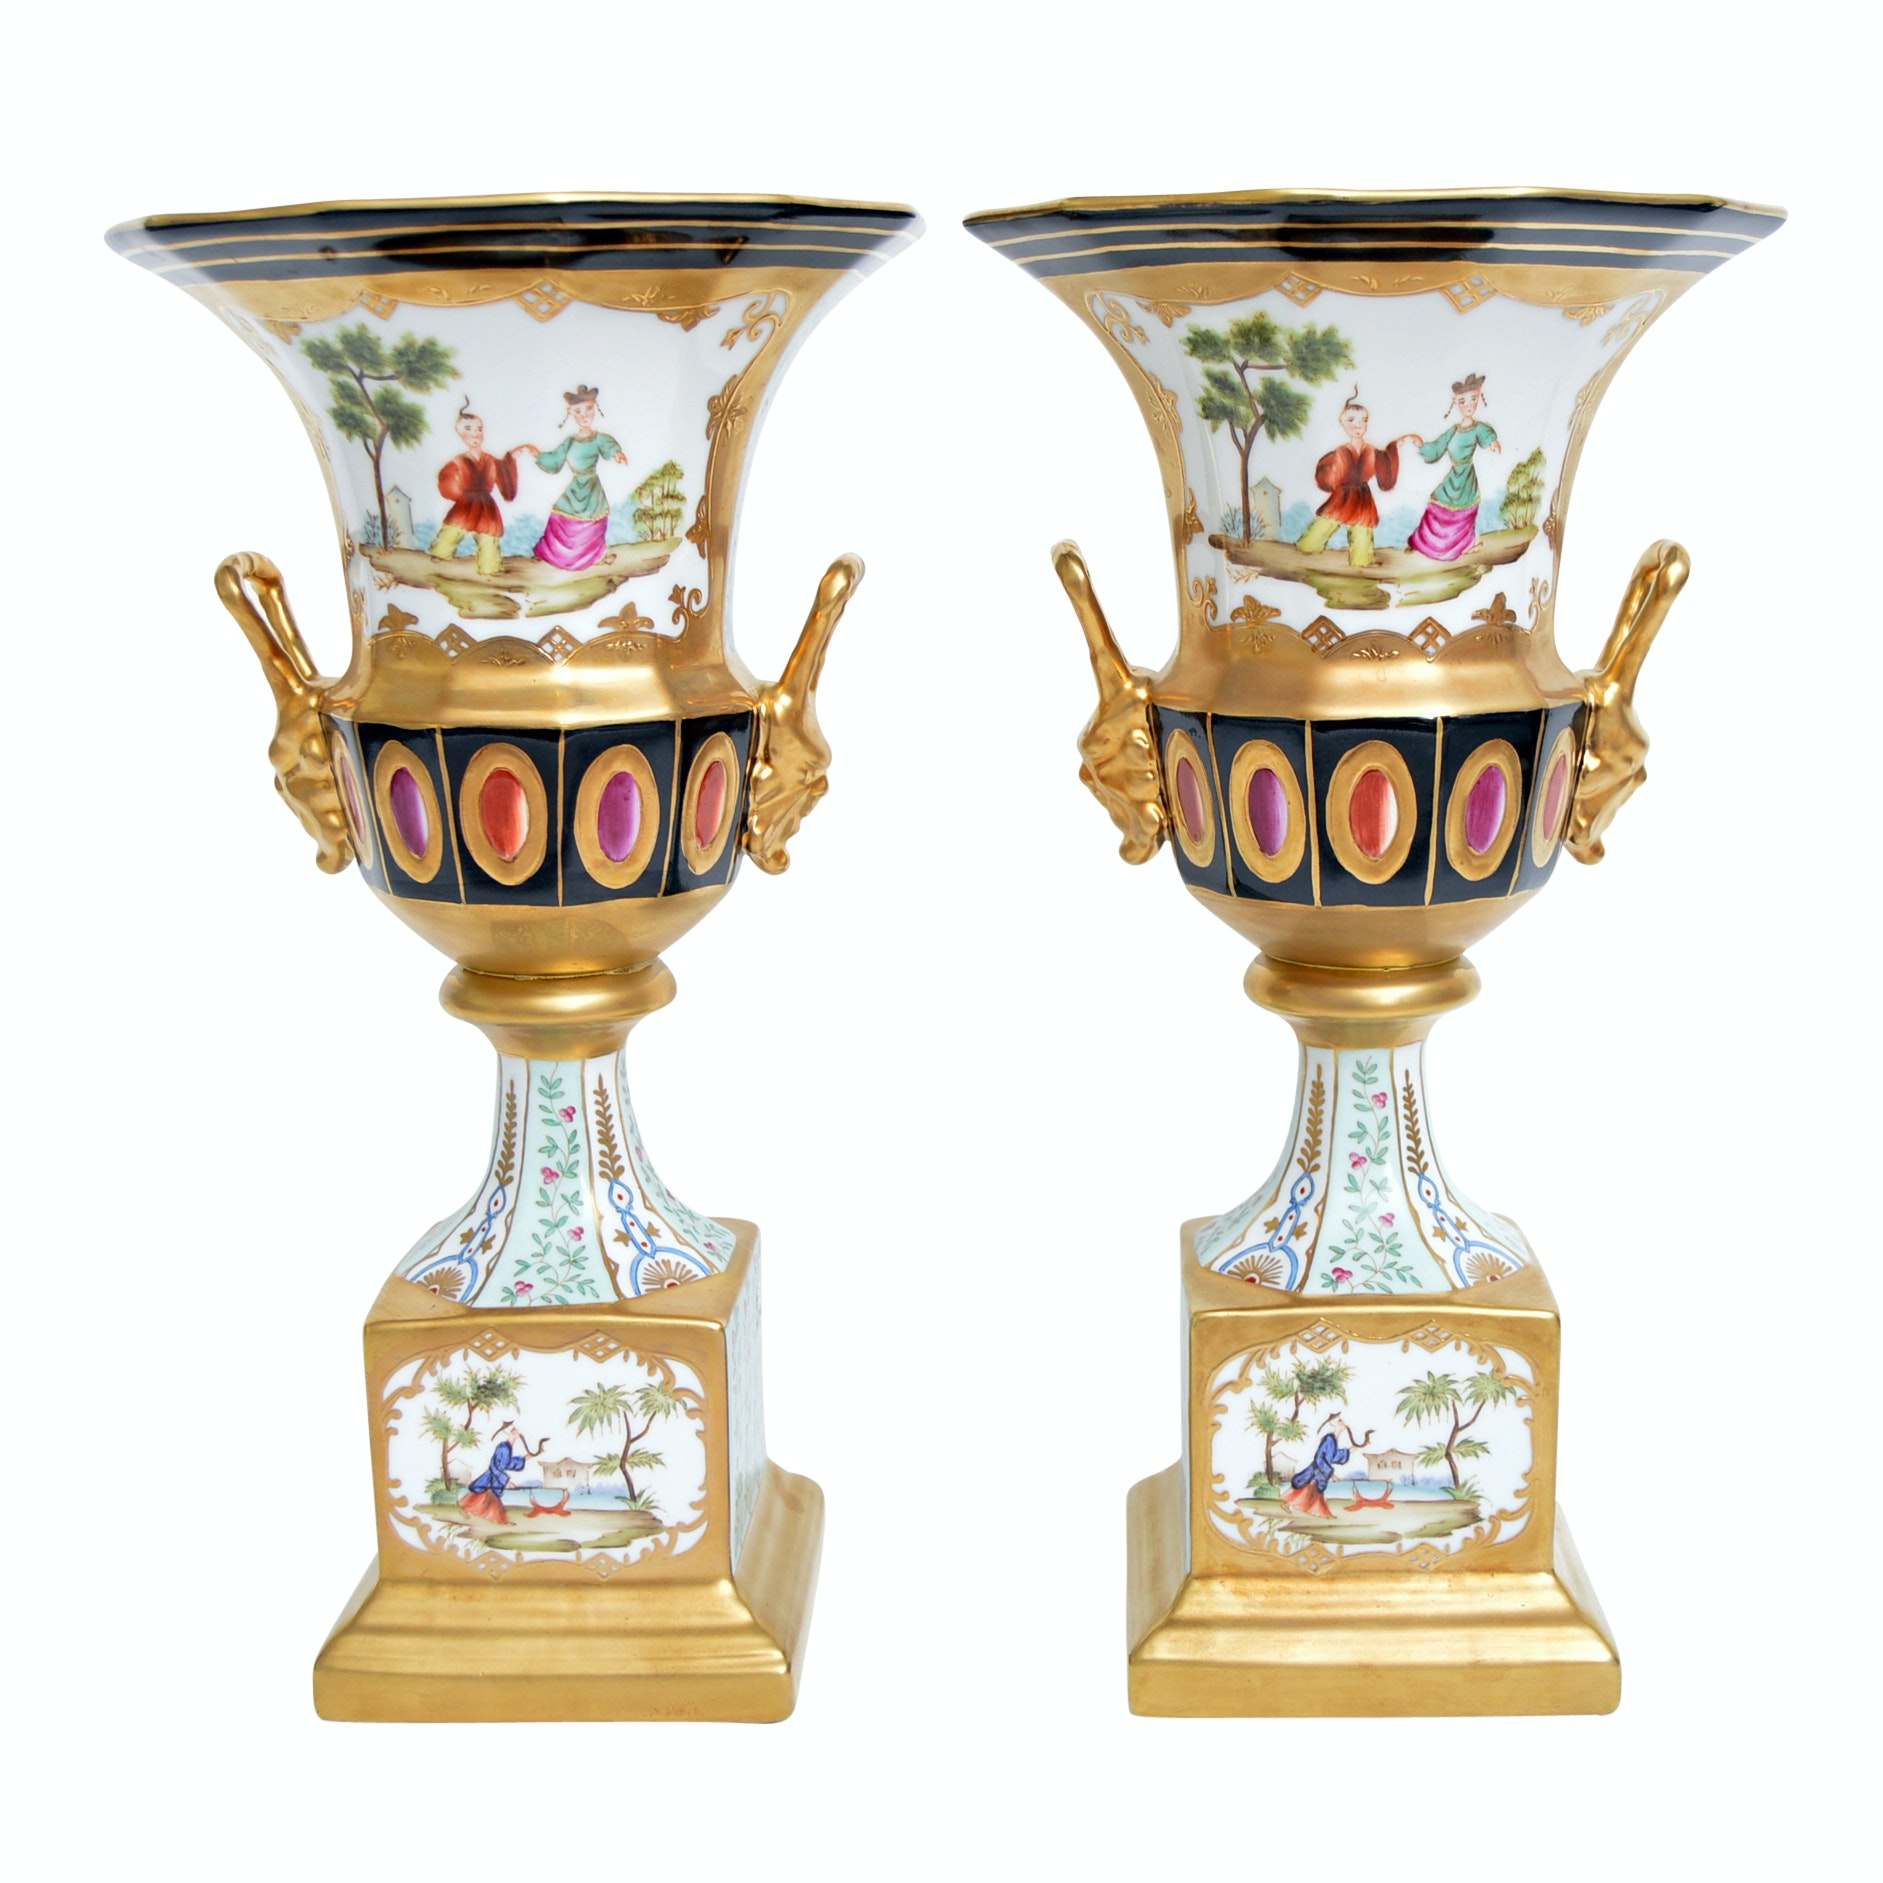 Pair of Chelsea House Old Paris Style Chinoiserie Decorated Porcelain Urns